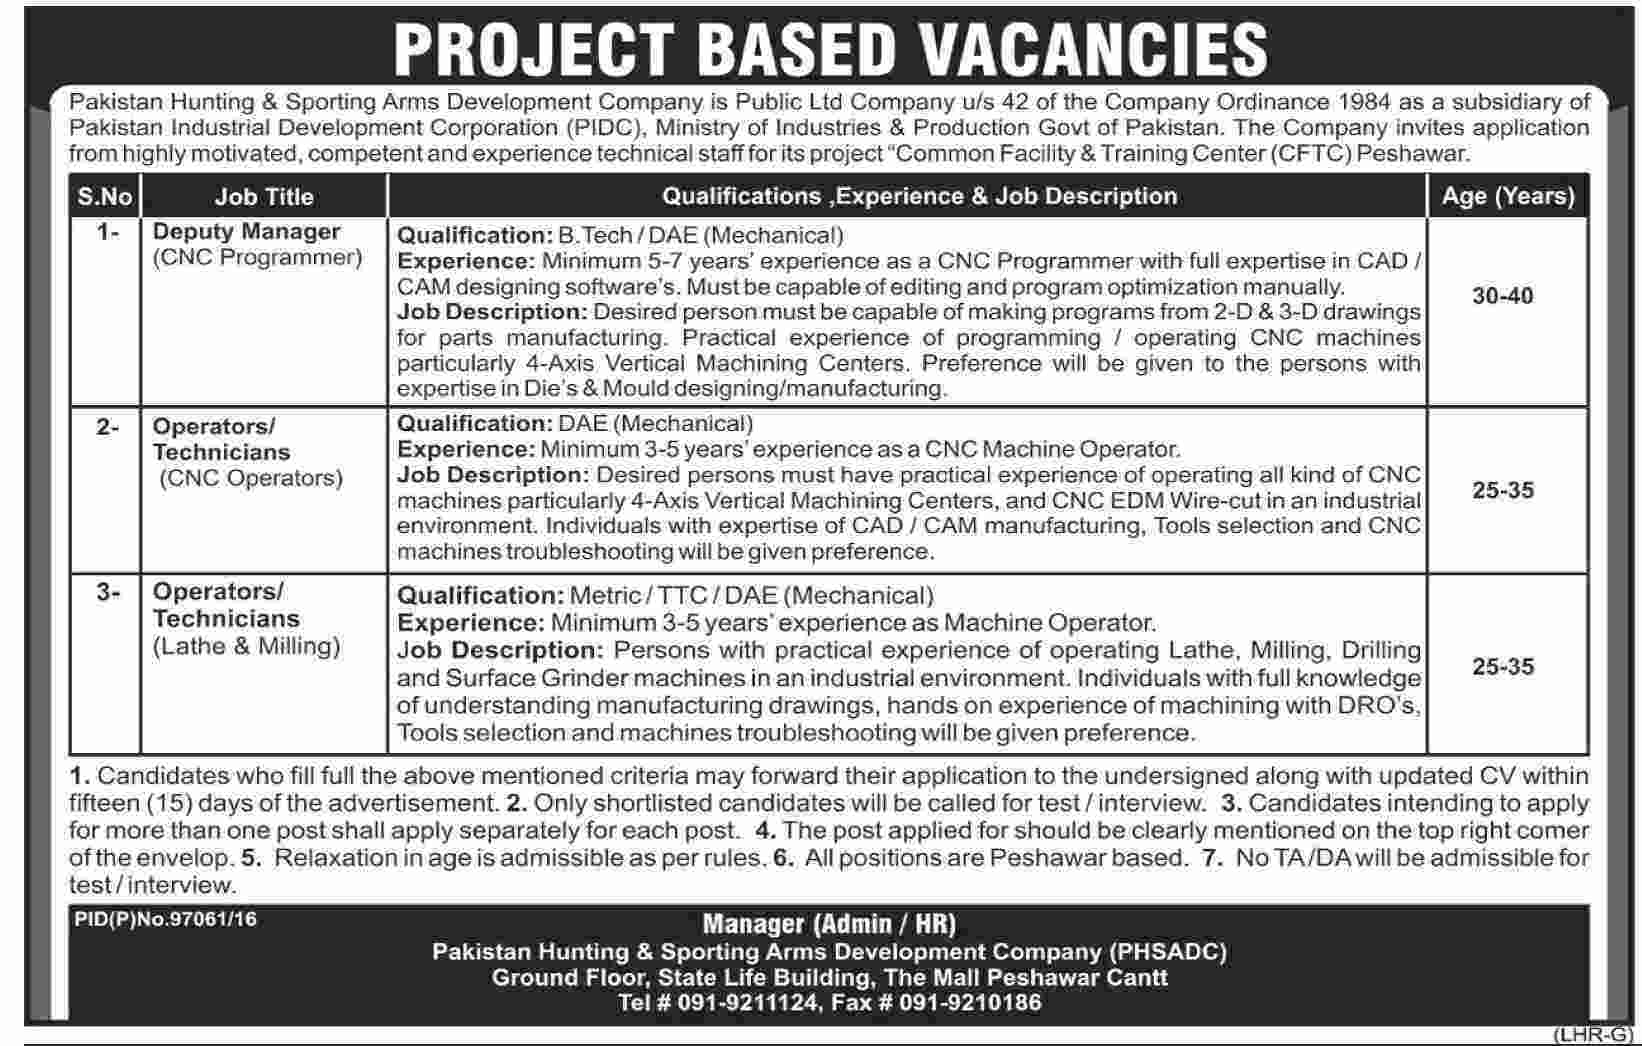 PHSADC Mechancial Jobs 2016